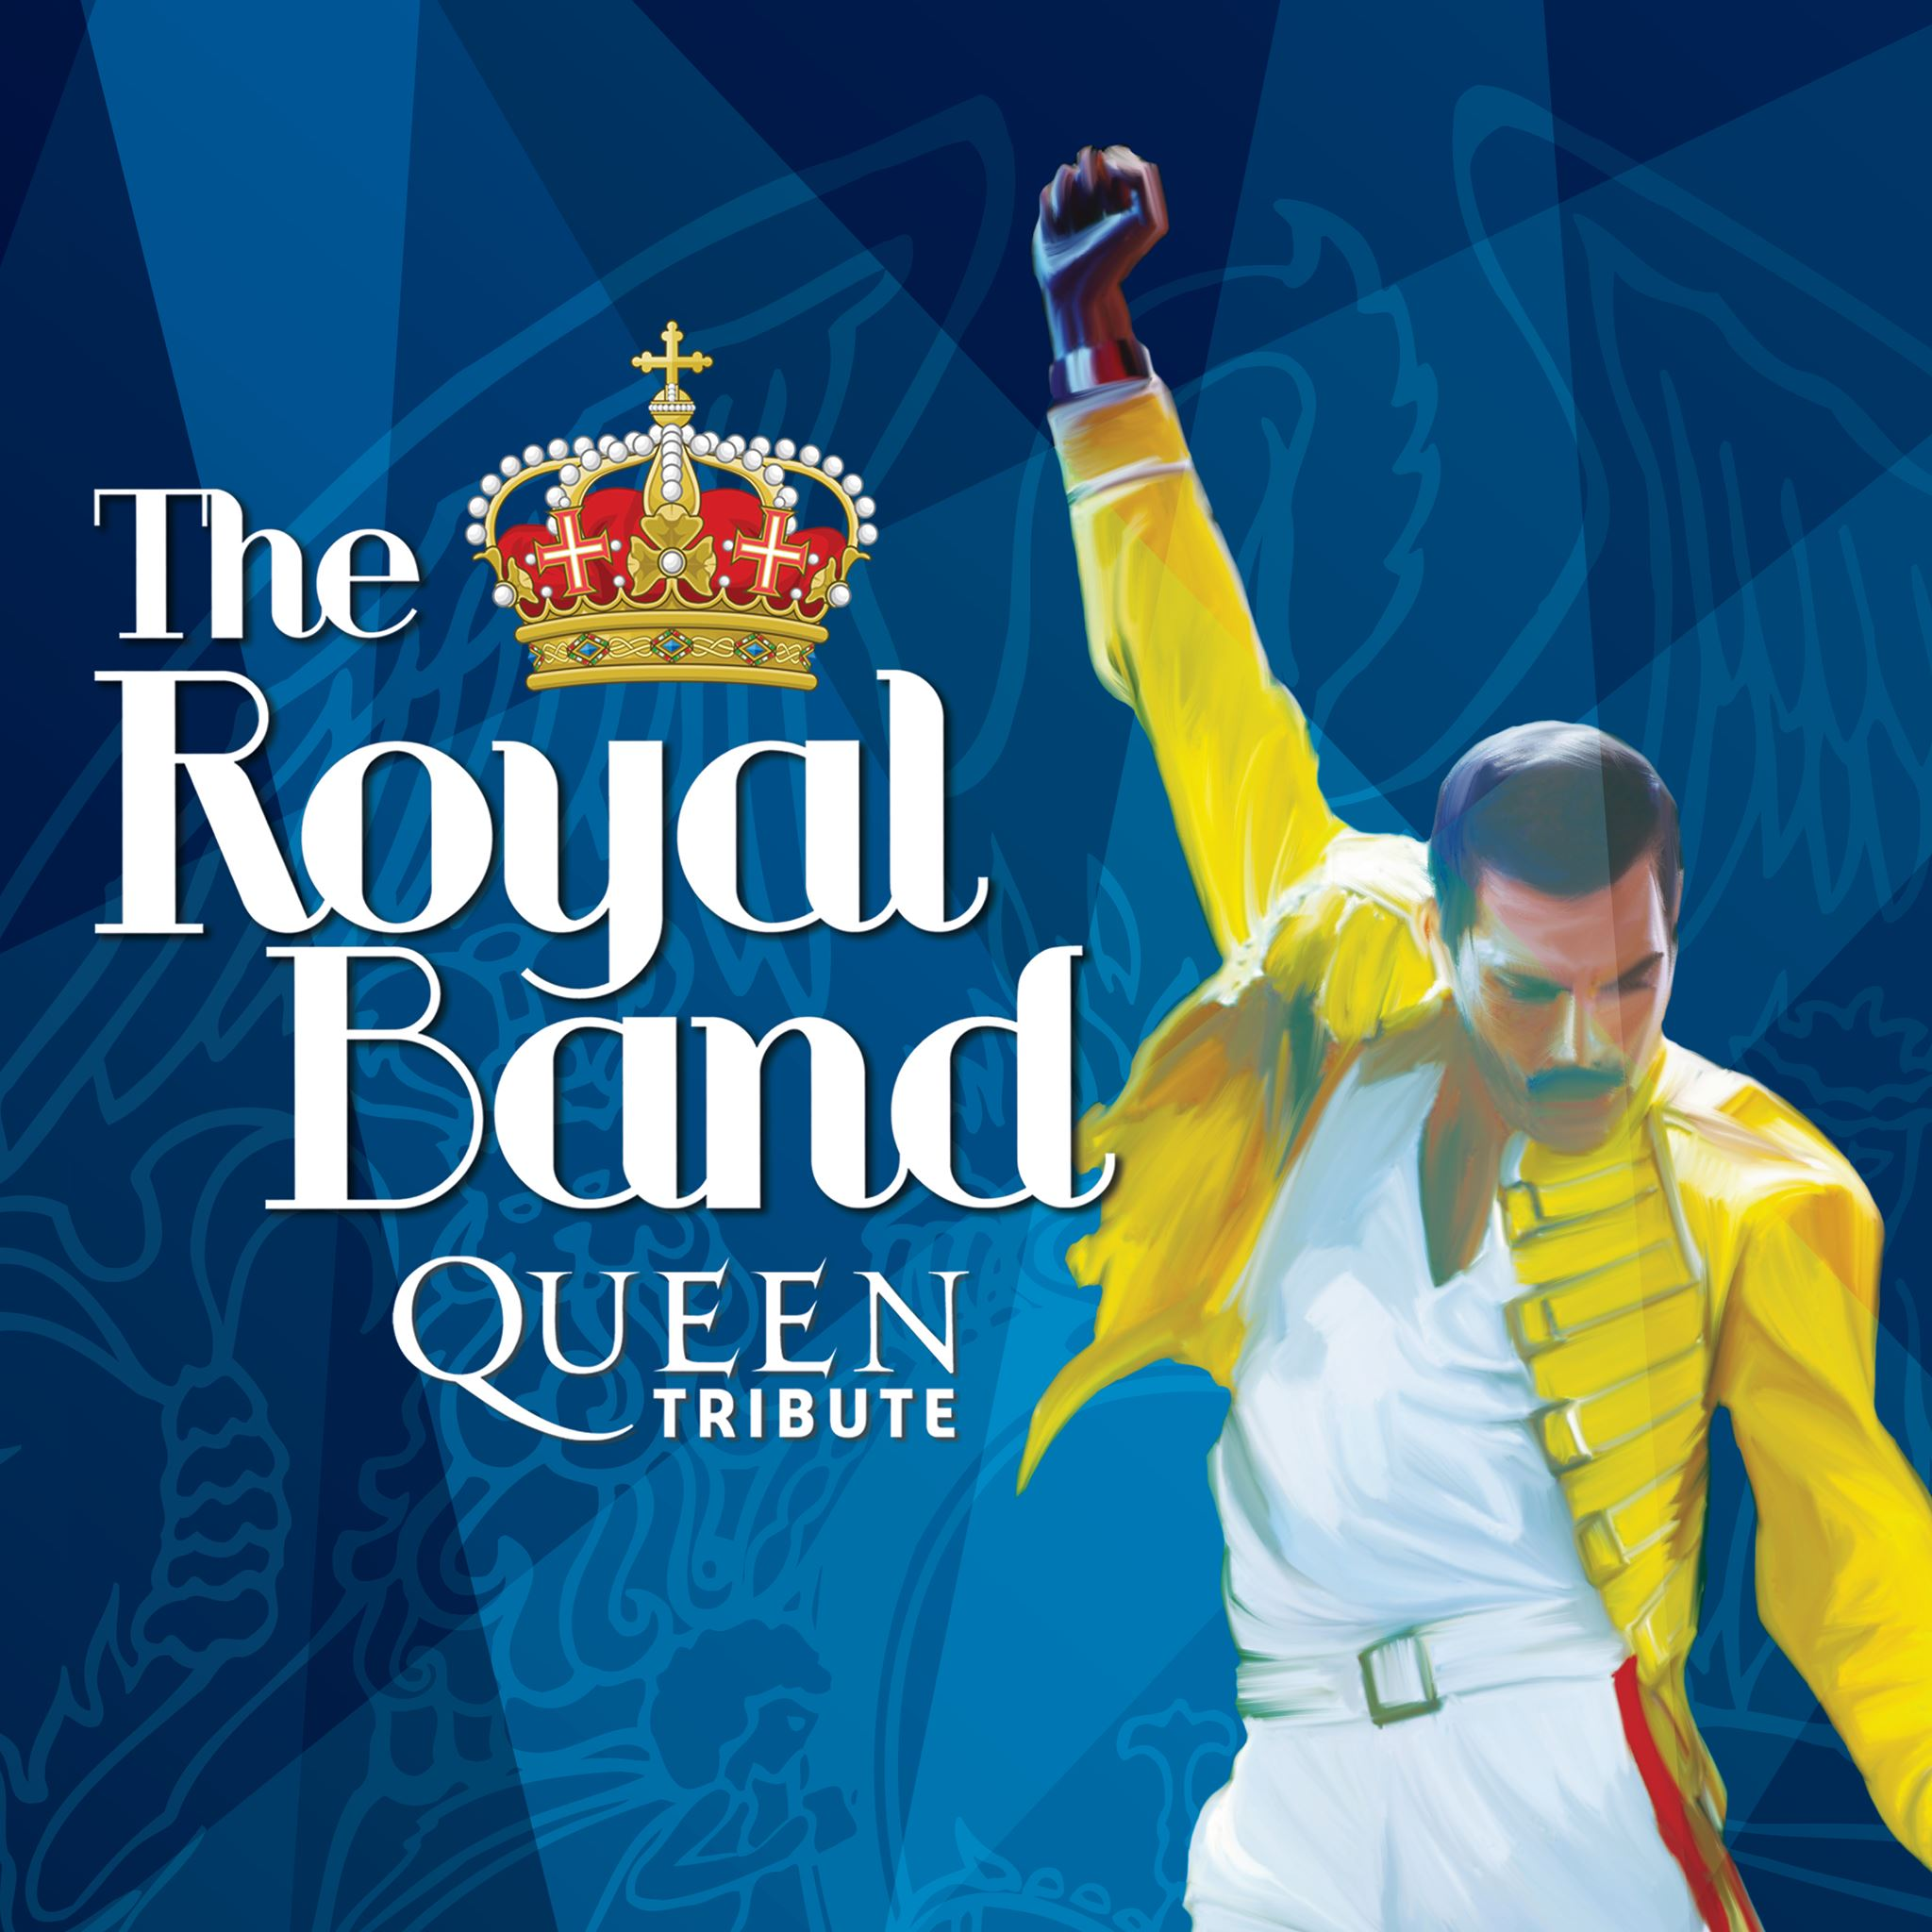 The Royal Band